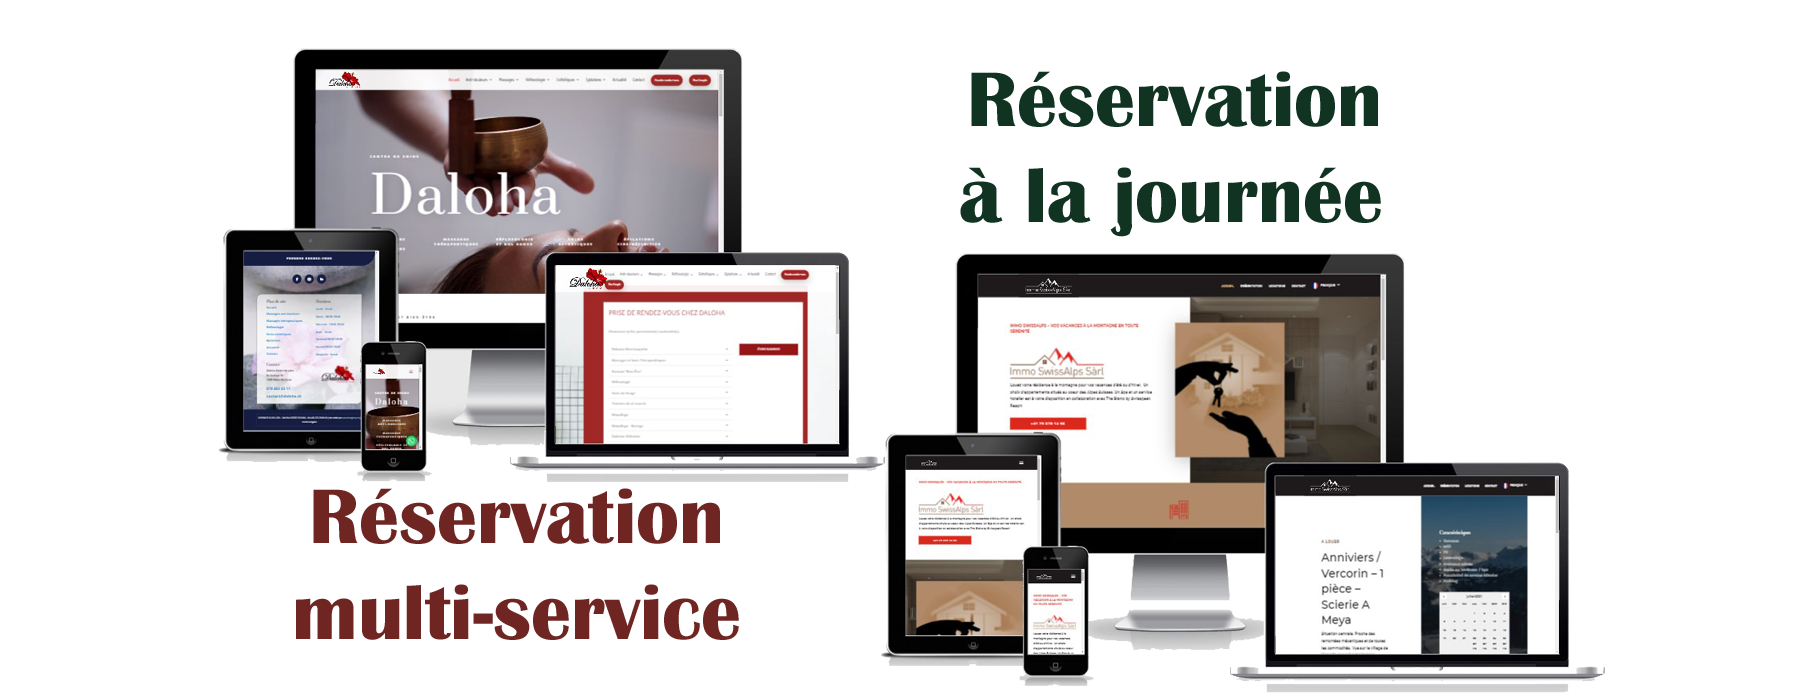 ImageReservations